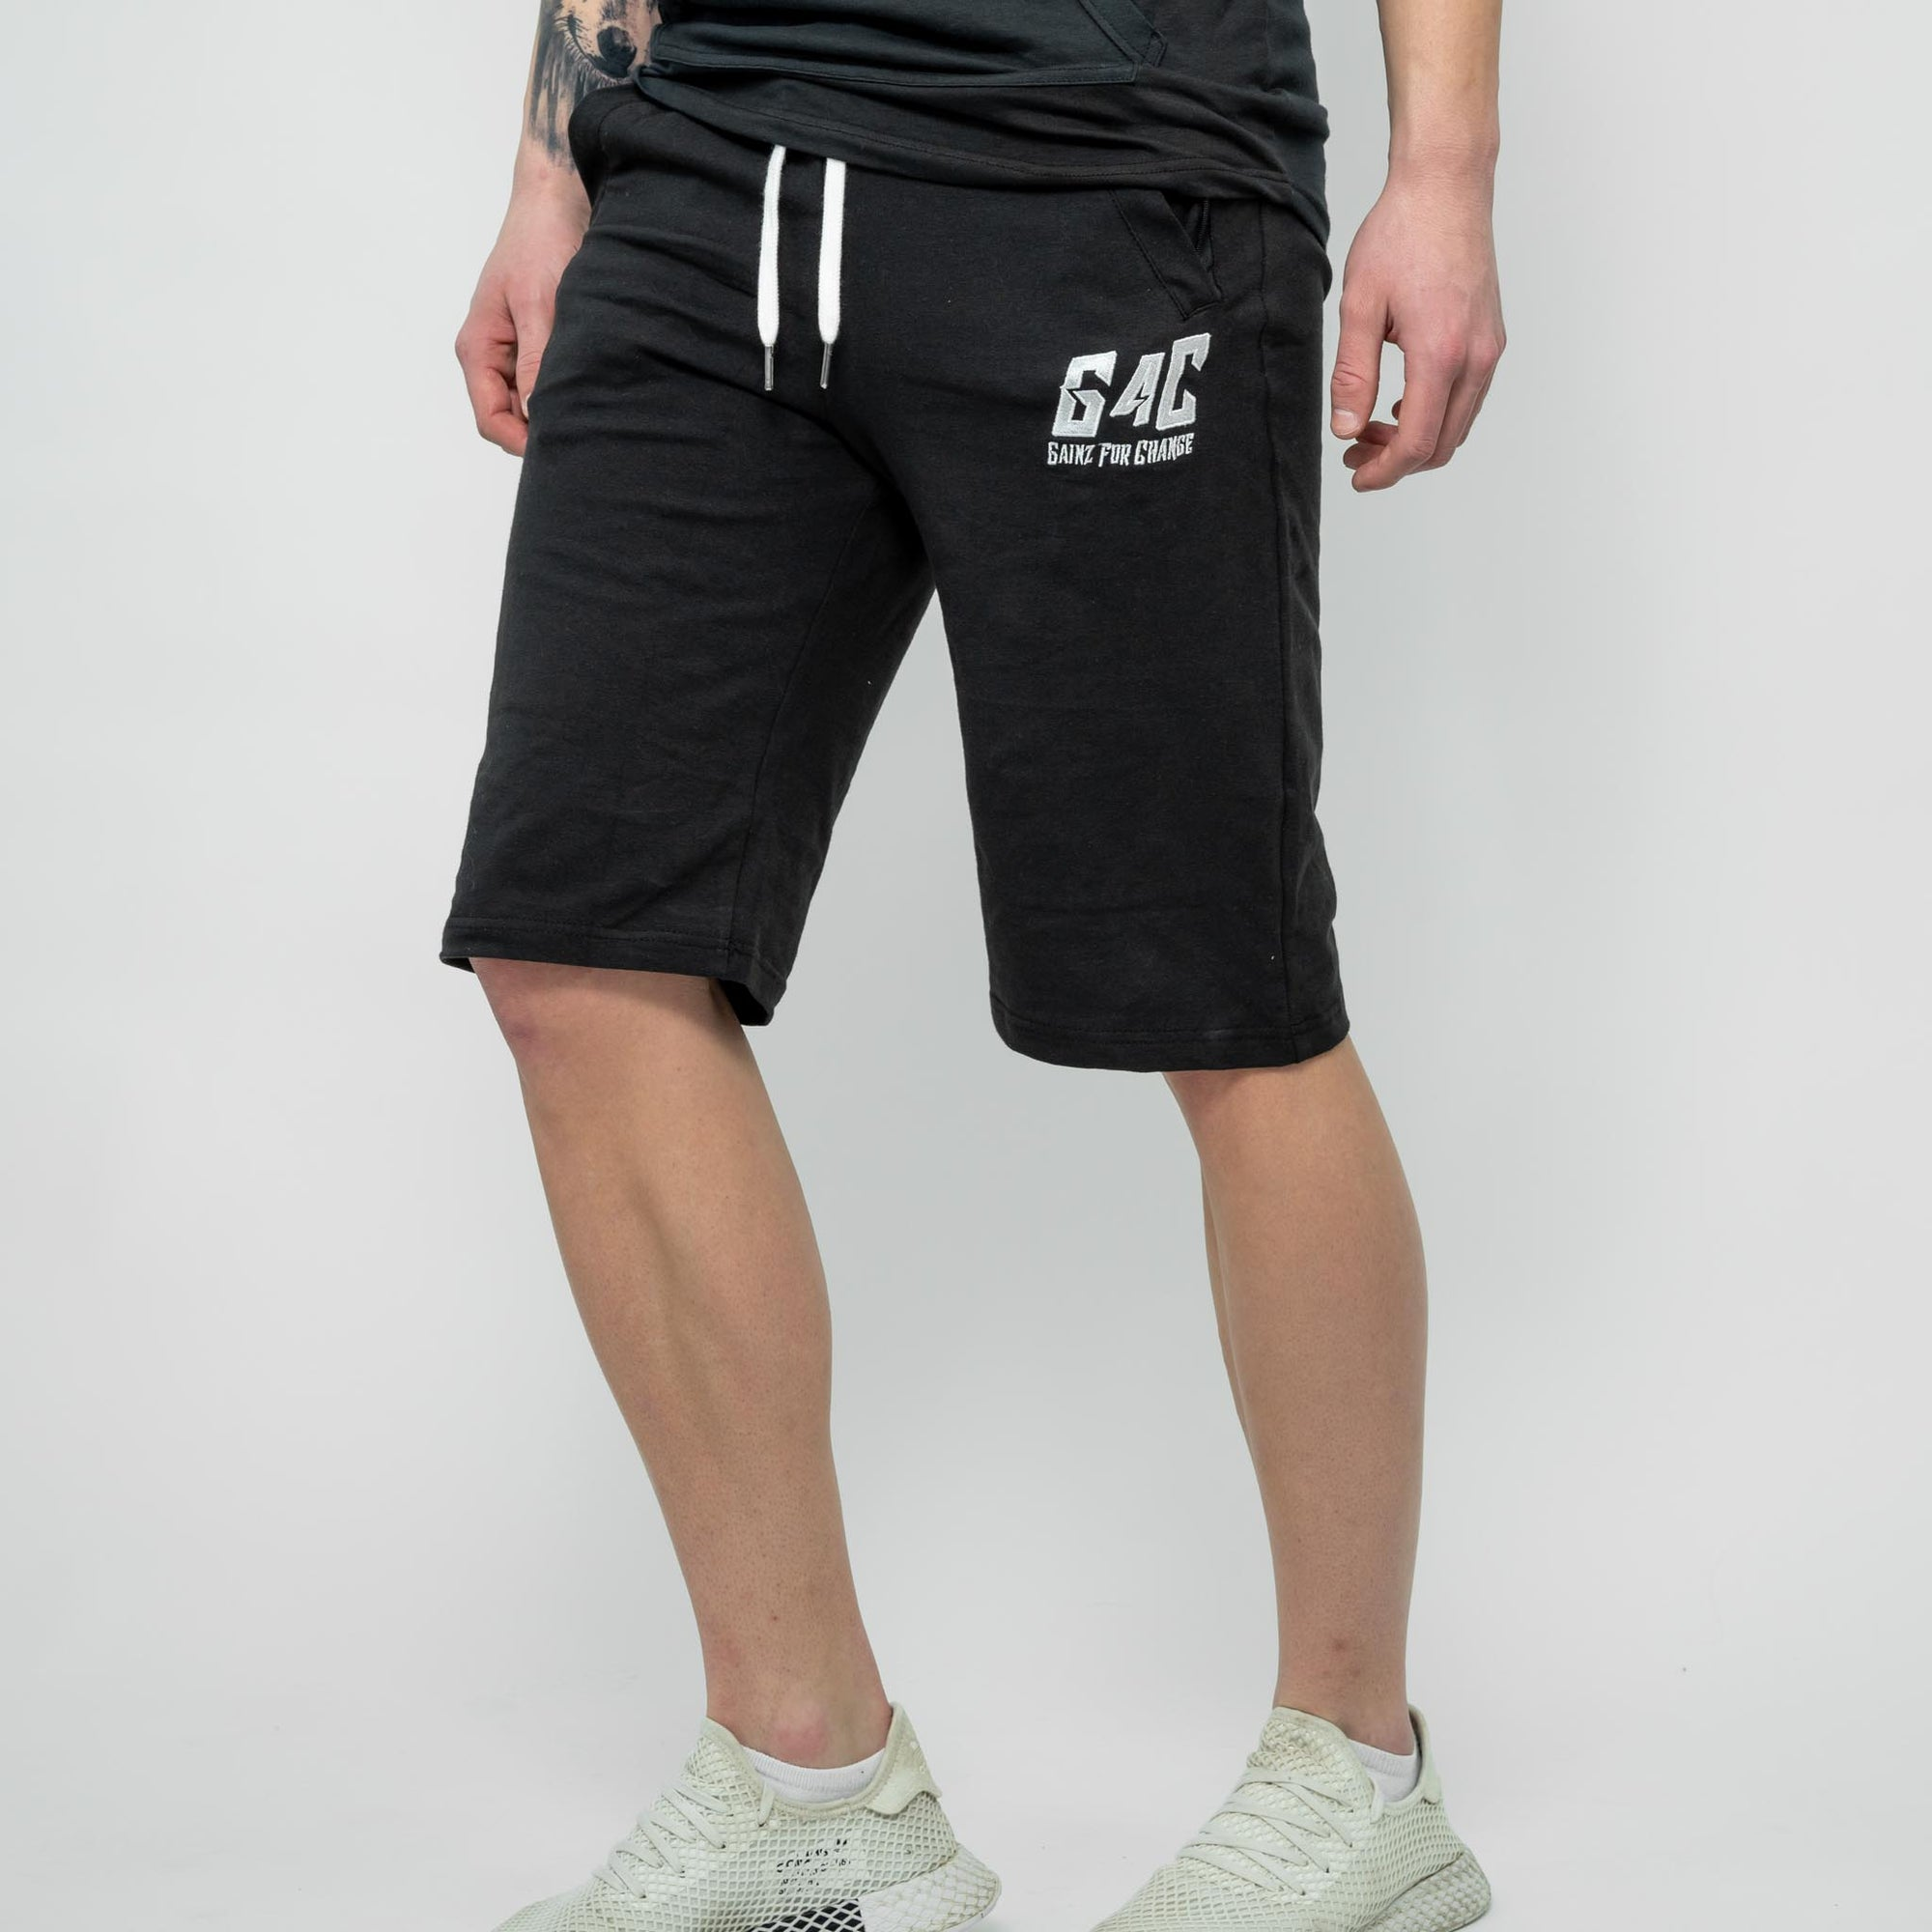 Gainz4Change Short Pants Basic schwarz - Gainz4Change